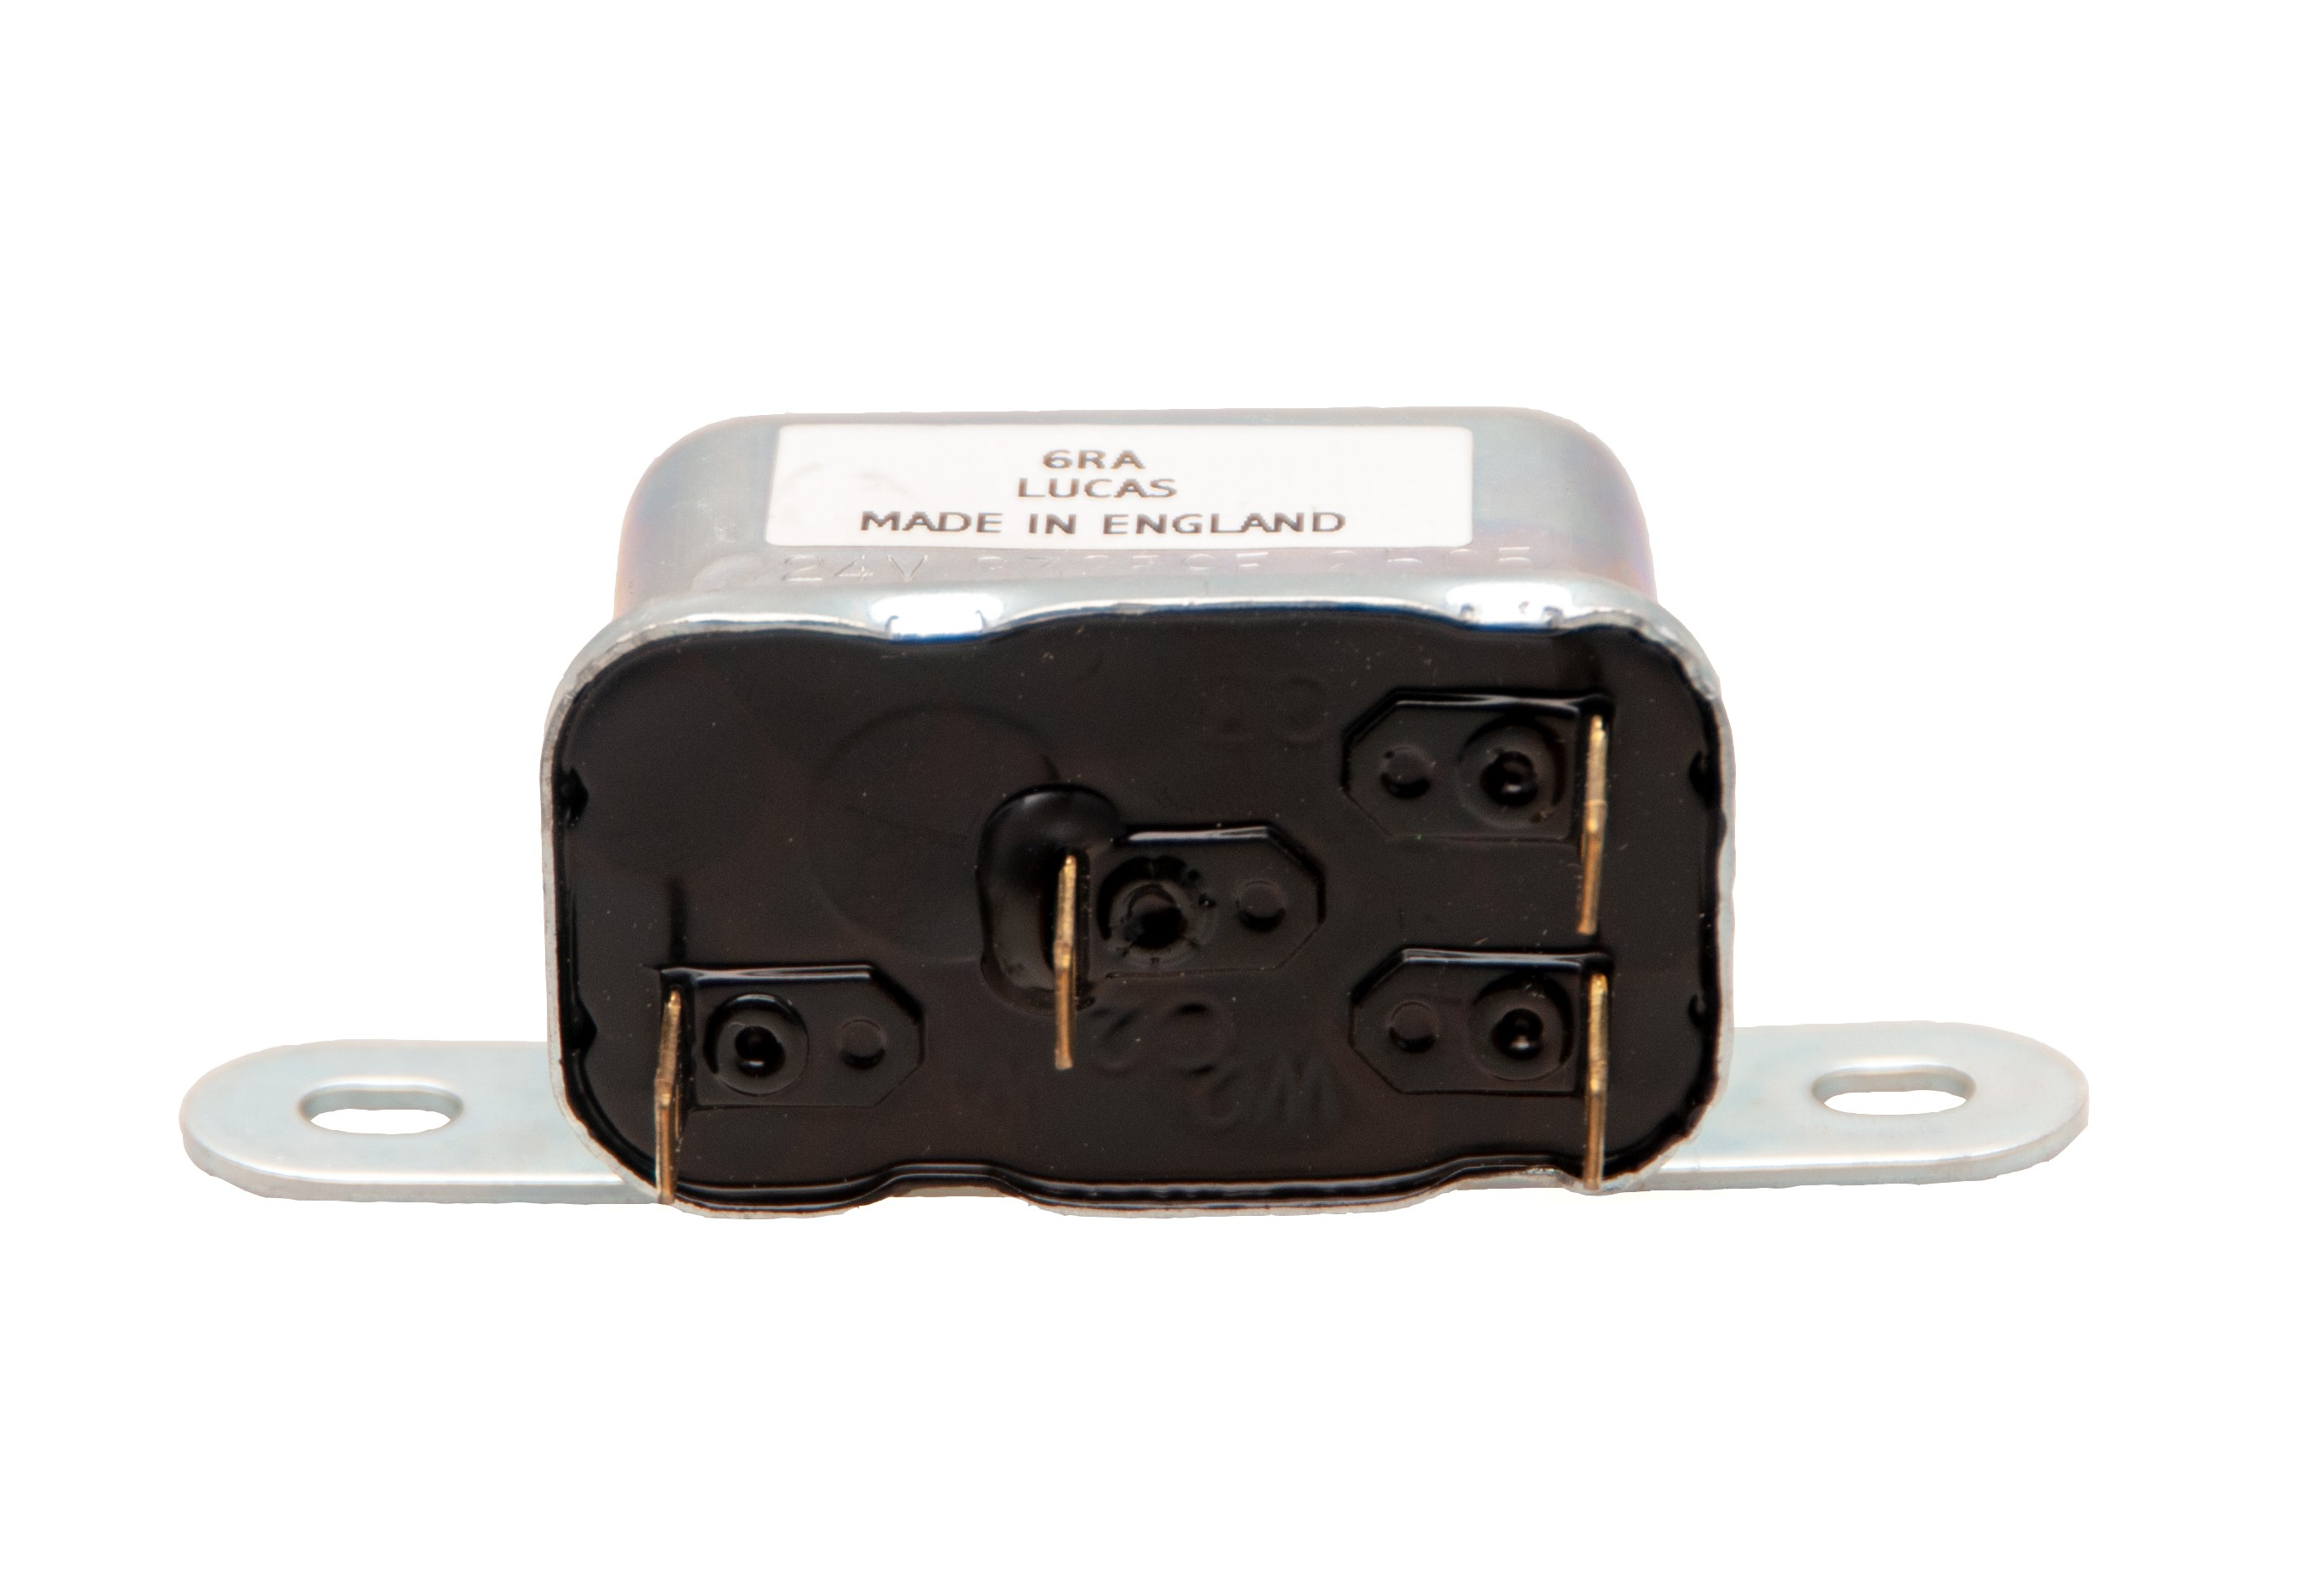 Lucas Type SRB220 Normally Closed Relay image #1